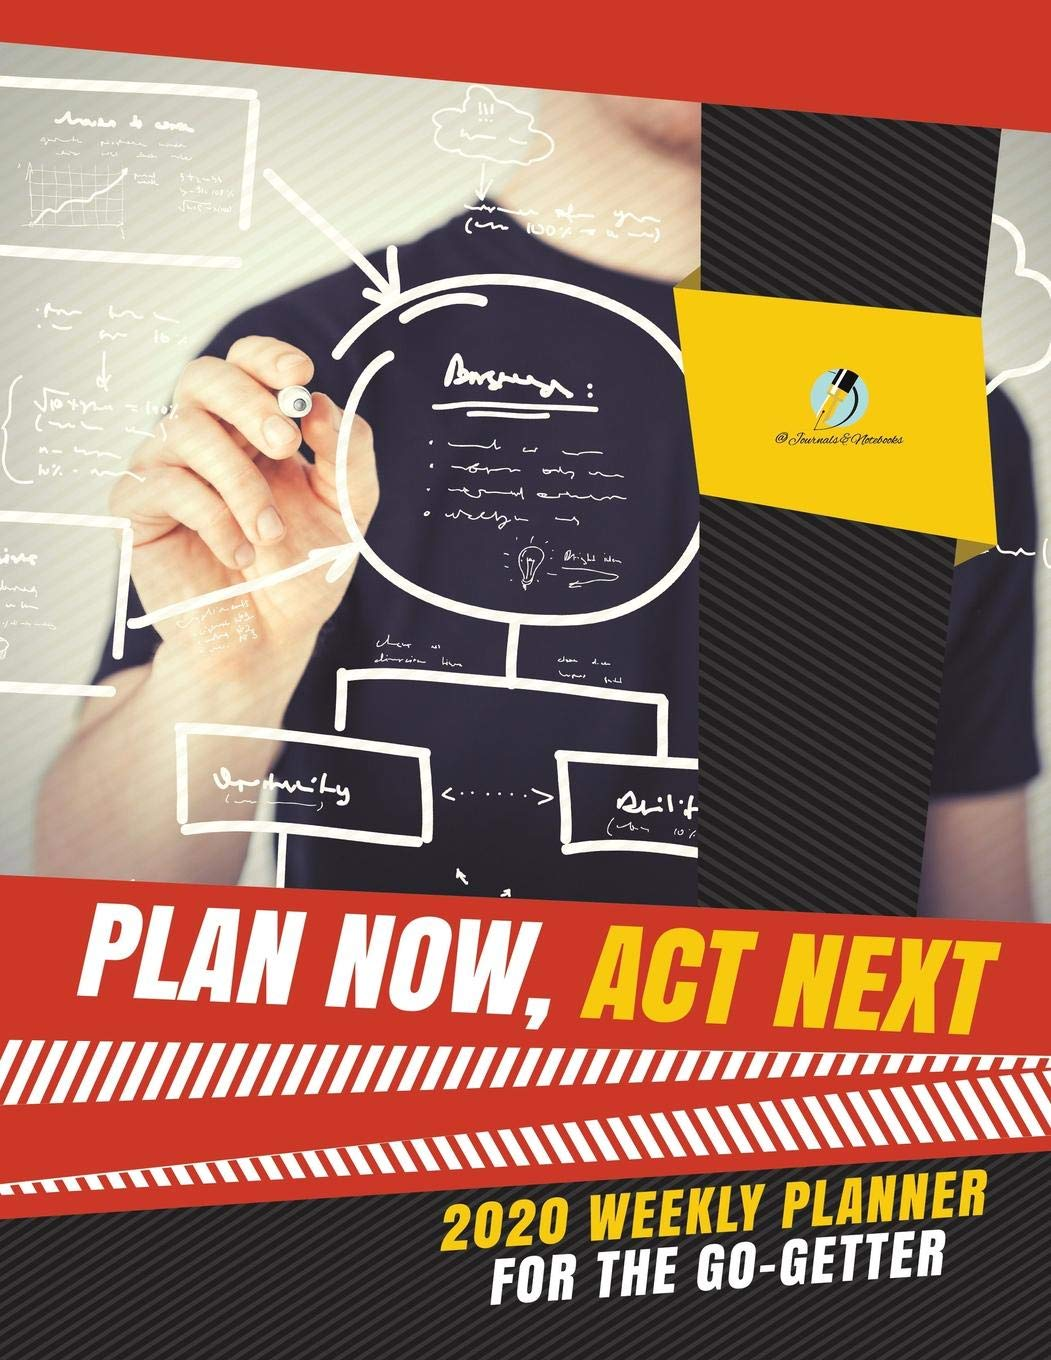 Getter Tour 2020 Plan Now, Act Next : 2020 Weekly Planner for the Go Getter